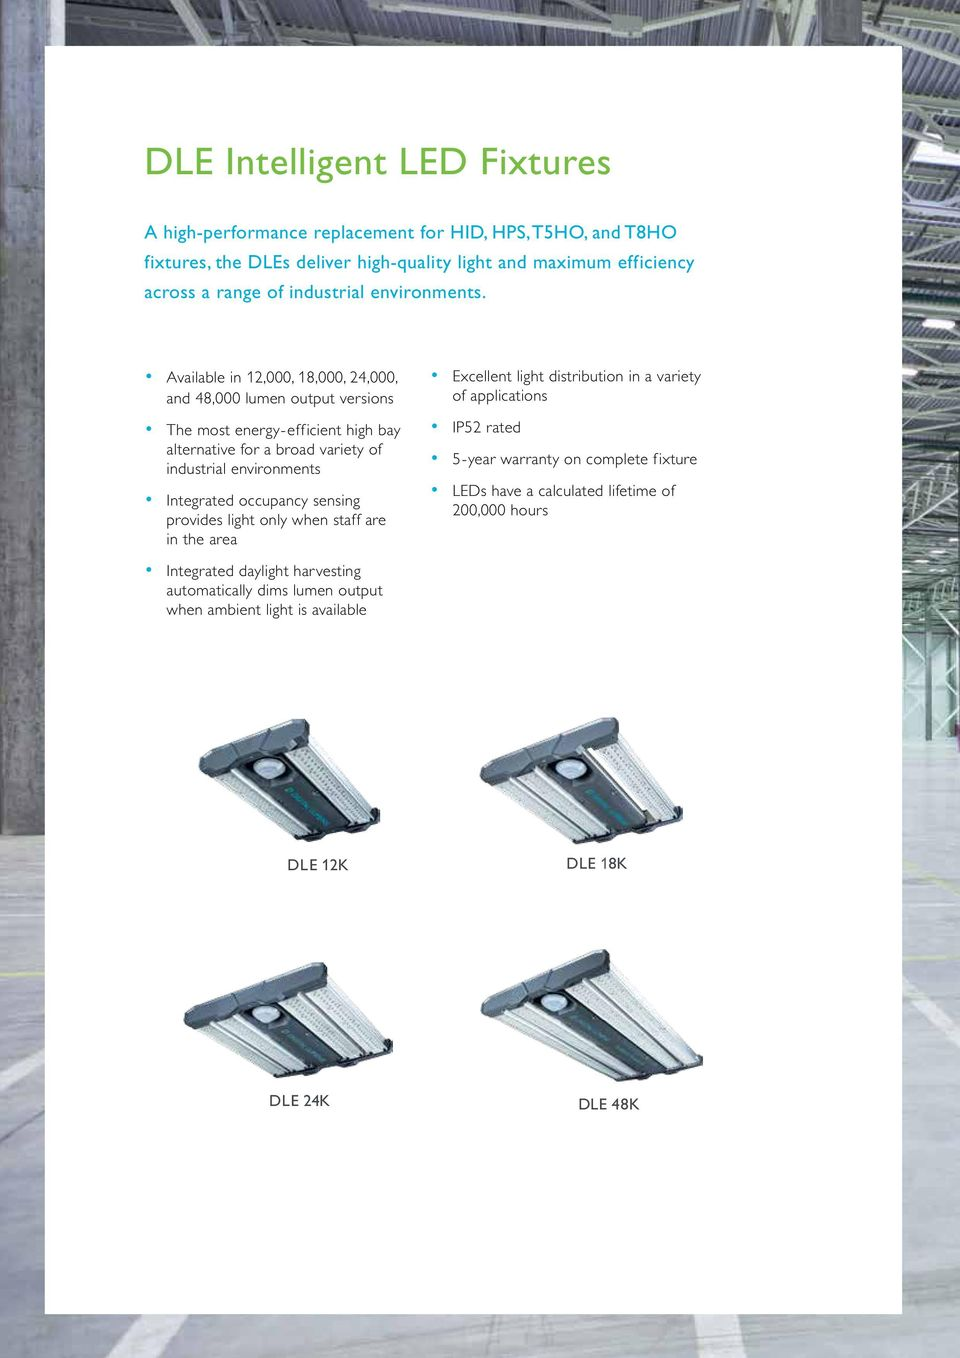 Available in 12,000, 18,000, 24,000, and 48,000 lumen output versions The most energy-efficient high bay alternative for a broad variety of industrial environments Integrated